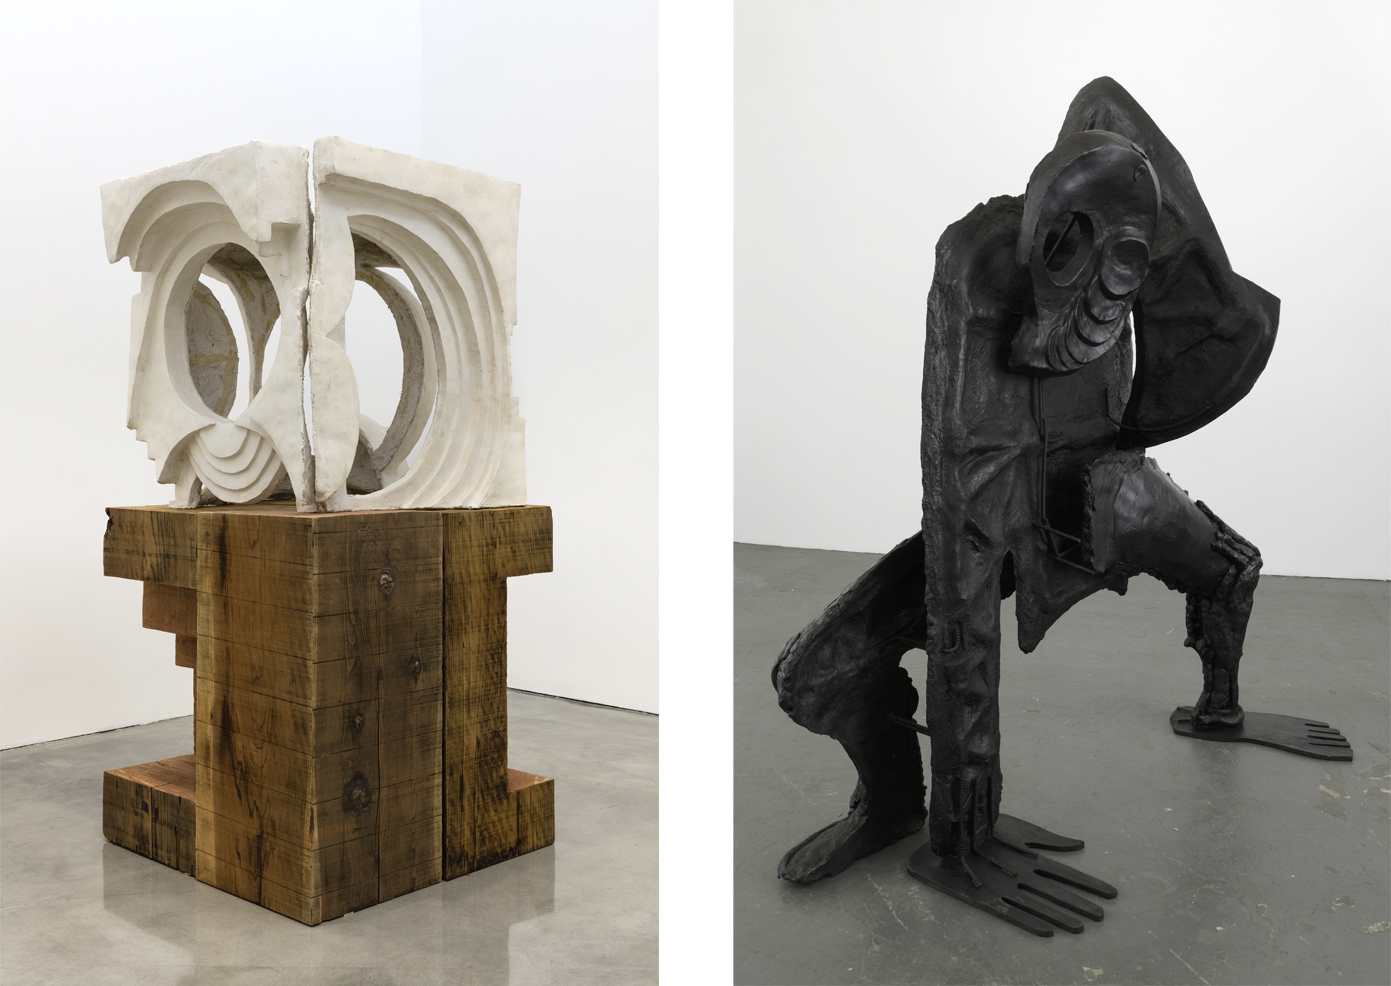 Left: Thomas Houseago, 'Design for a Museum,' 2017. Photography by Fredrik Nilsen. Courtesy of the artist and Gagosian Gallery.Right: Thomas Houseago, 'Sprawling Octopus Man,' 2009. Photography by Joshua White. Courtesy of the artist and Hauser & Wirth.